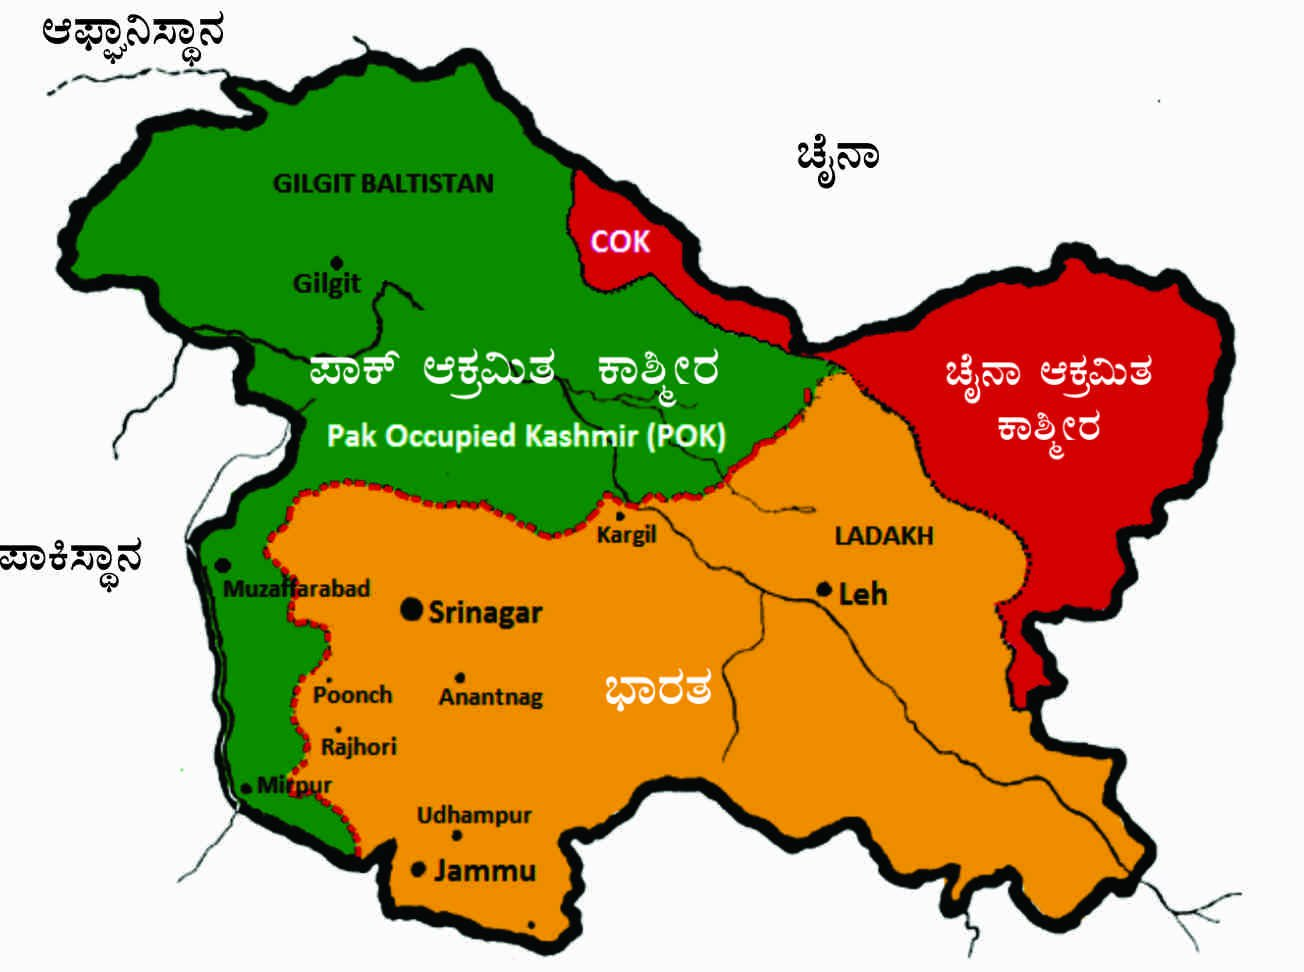 JAMMU AND KASHMIR KANNADA MAP